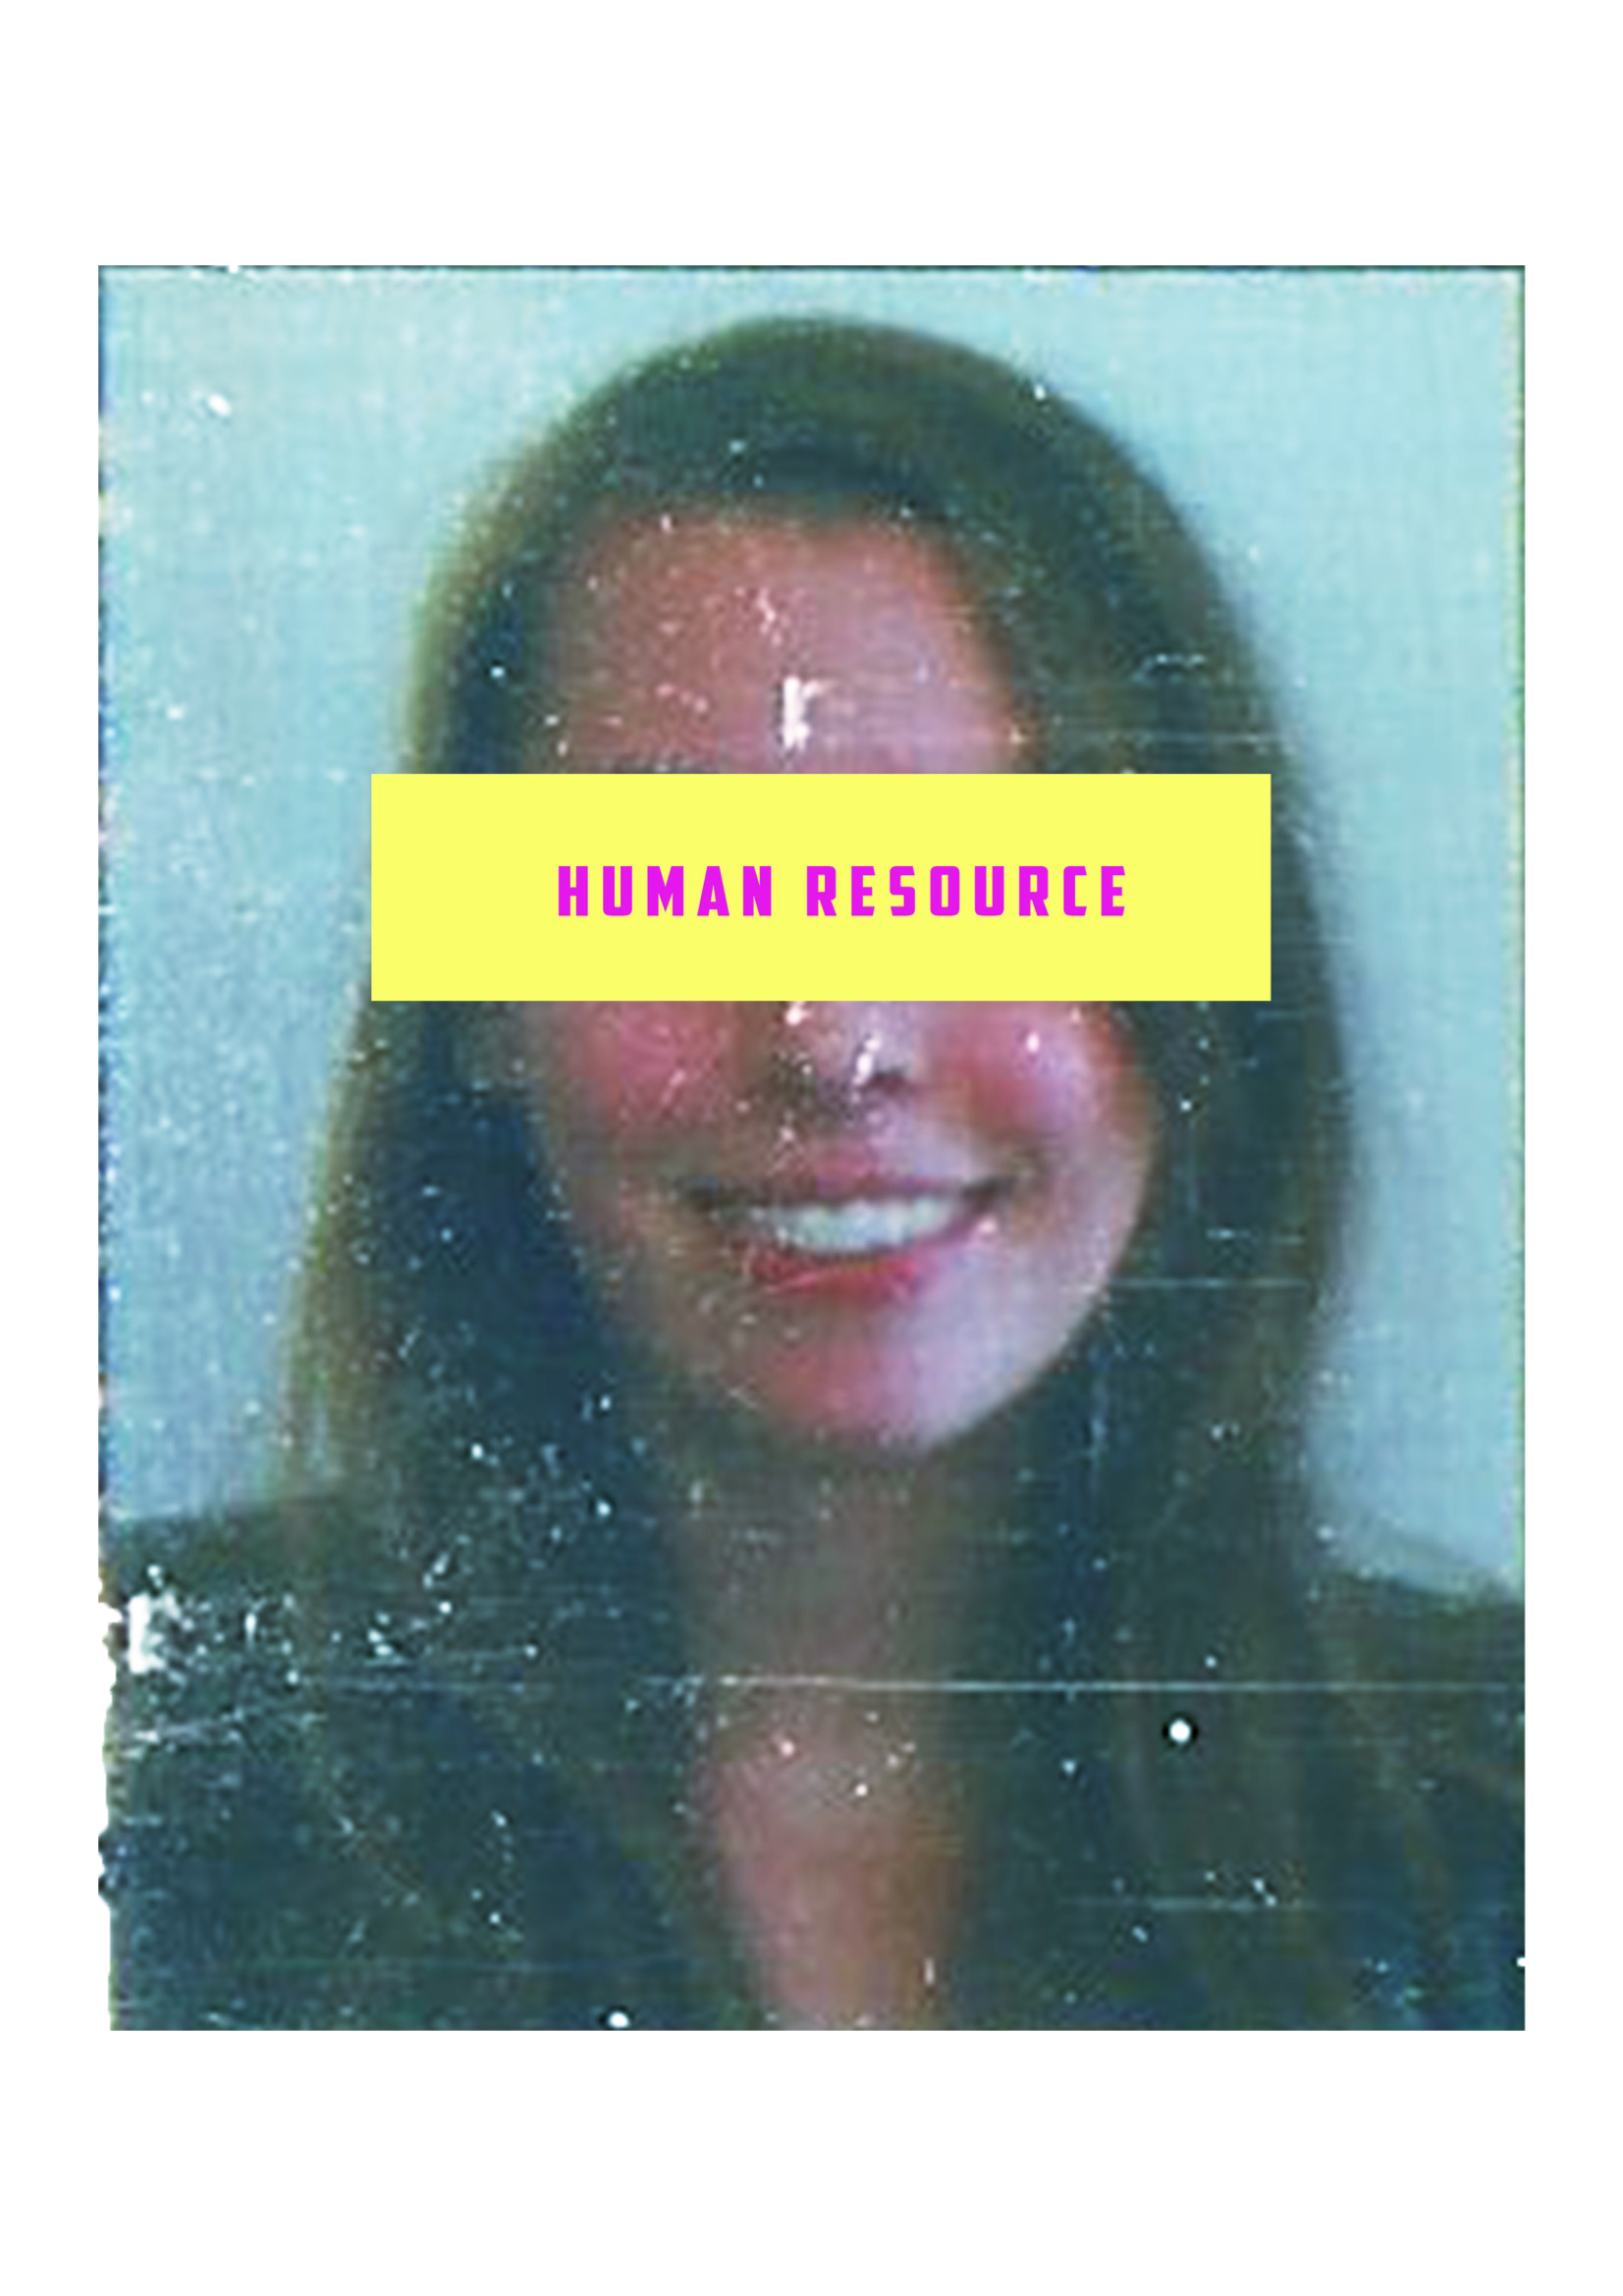 human resource_idpic.png